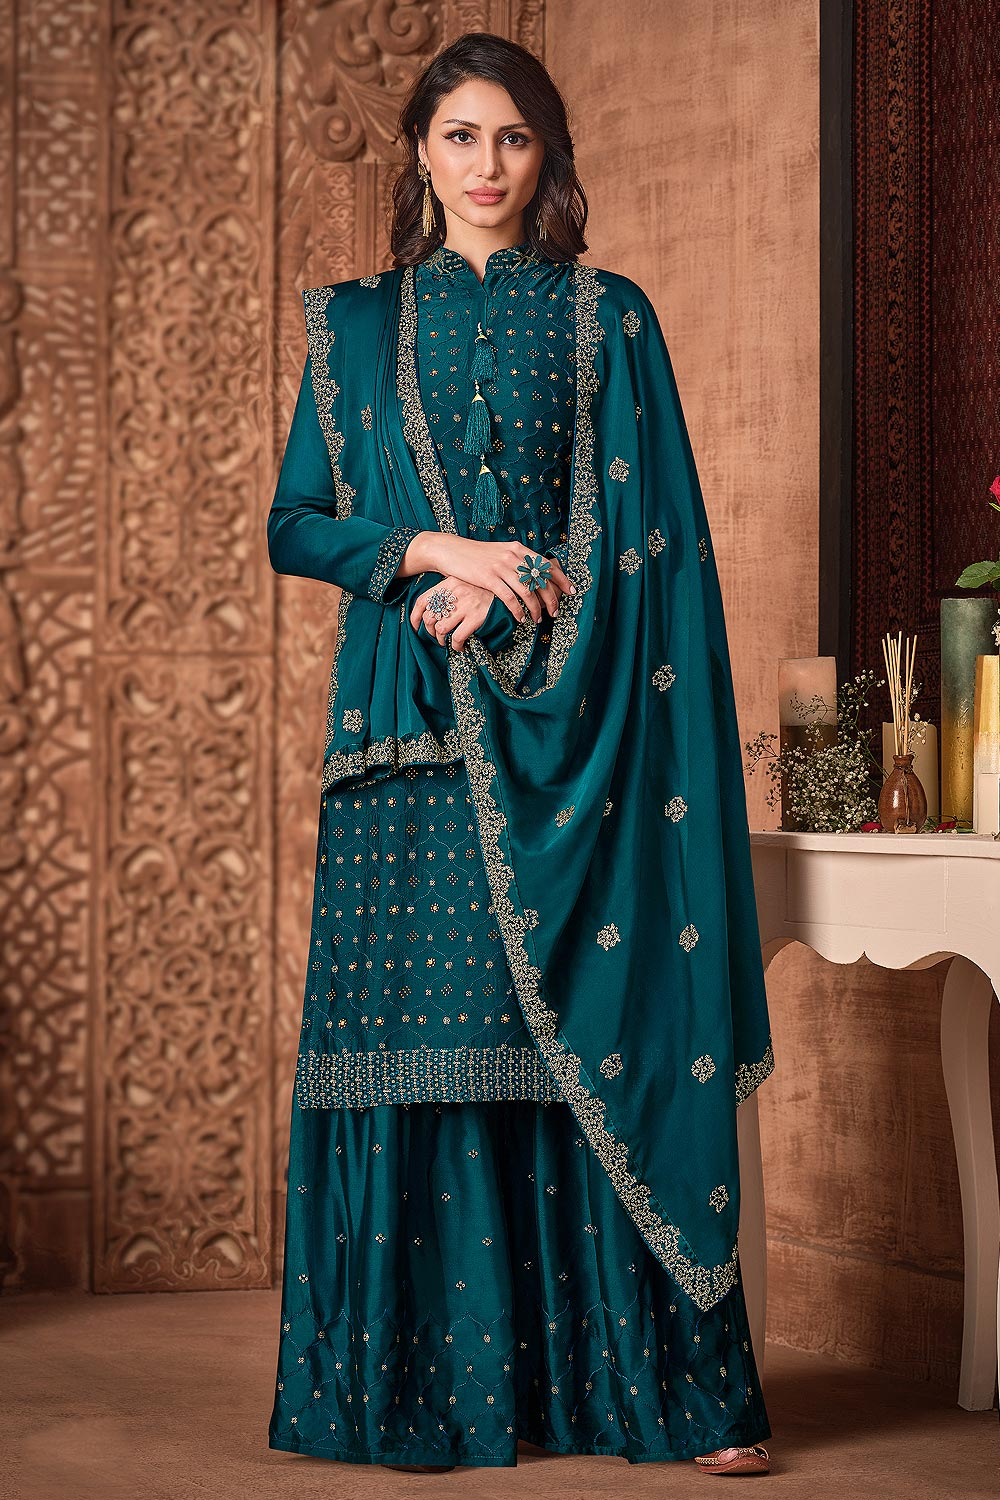 Teal Blue Silk Sharara Suit With Sequin And Swarovski Embellishment